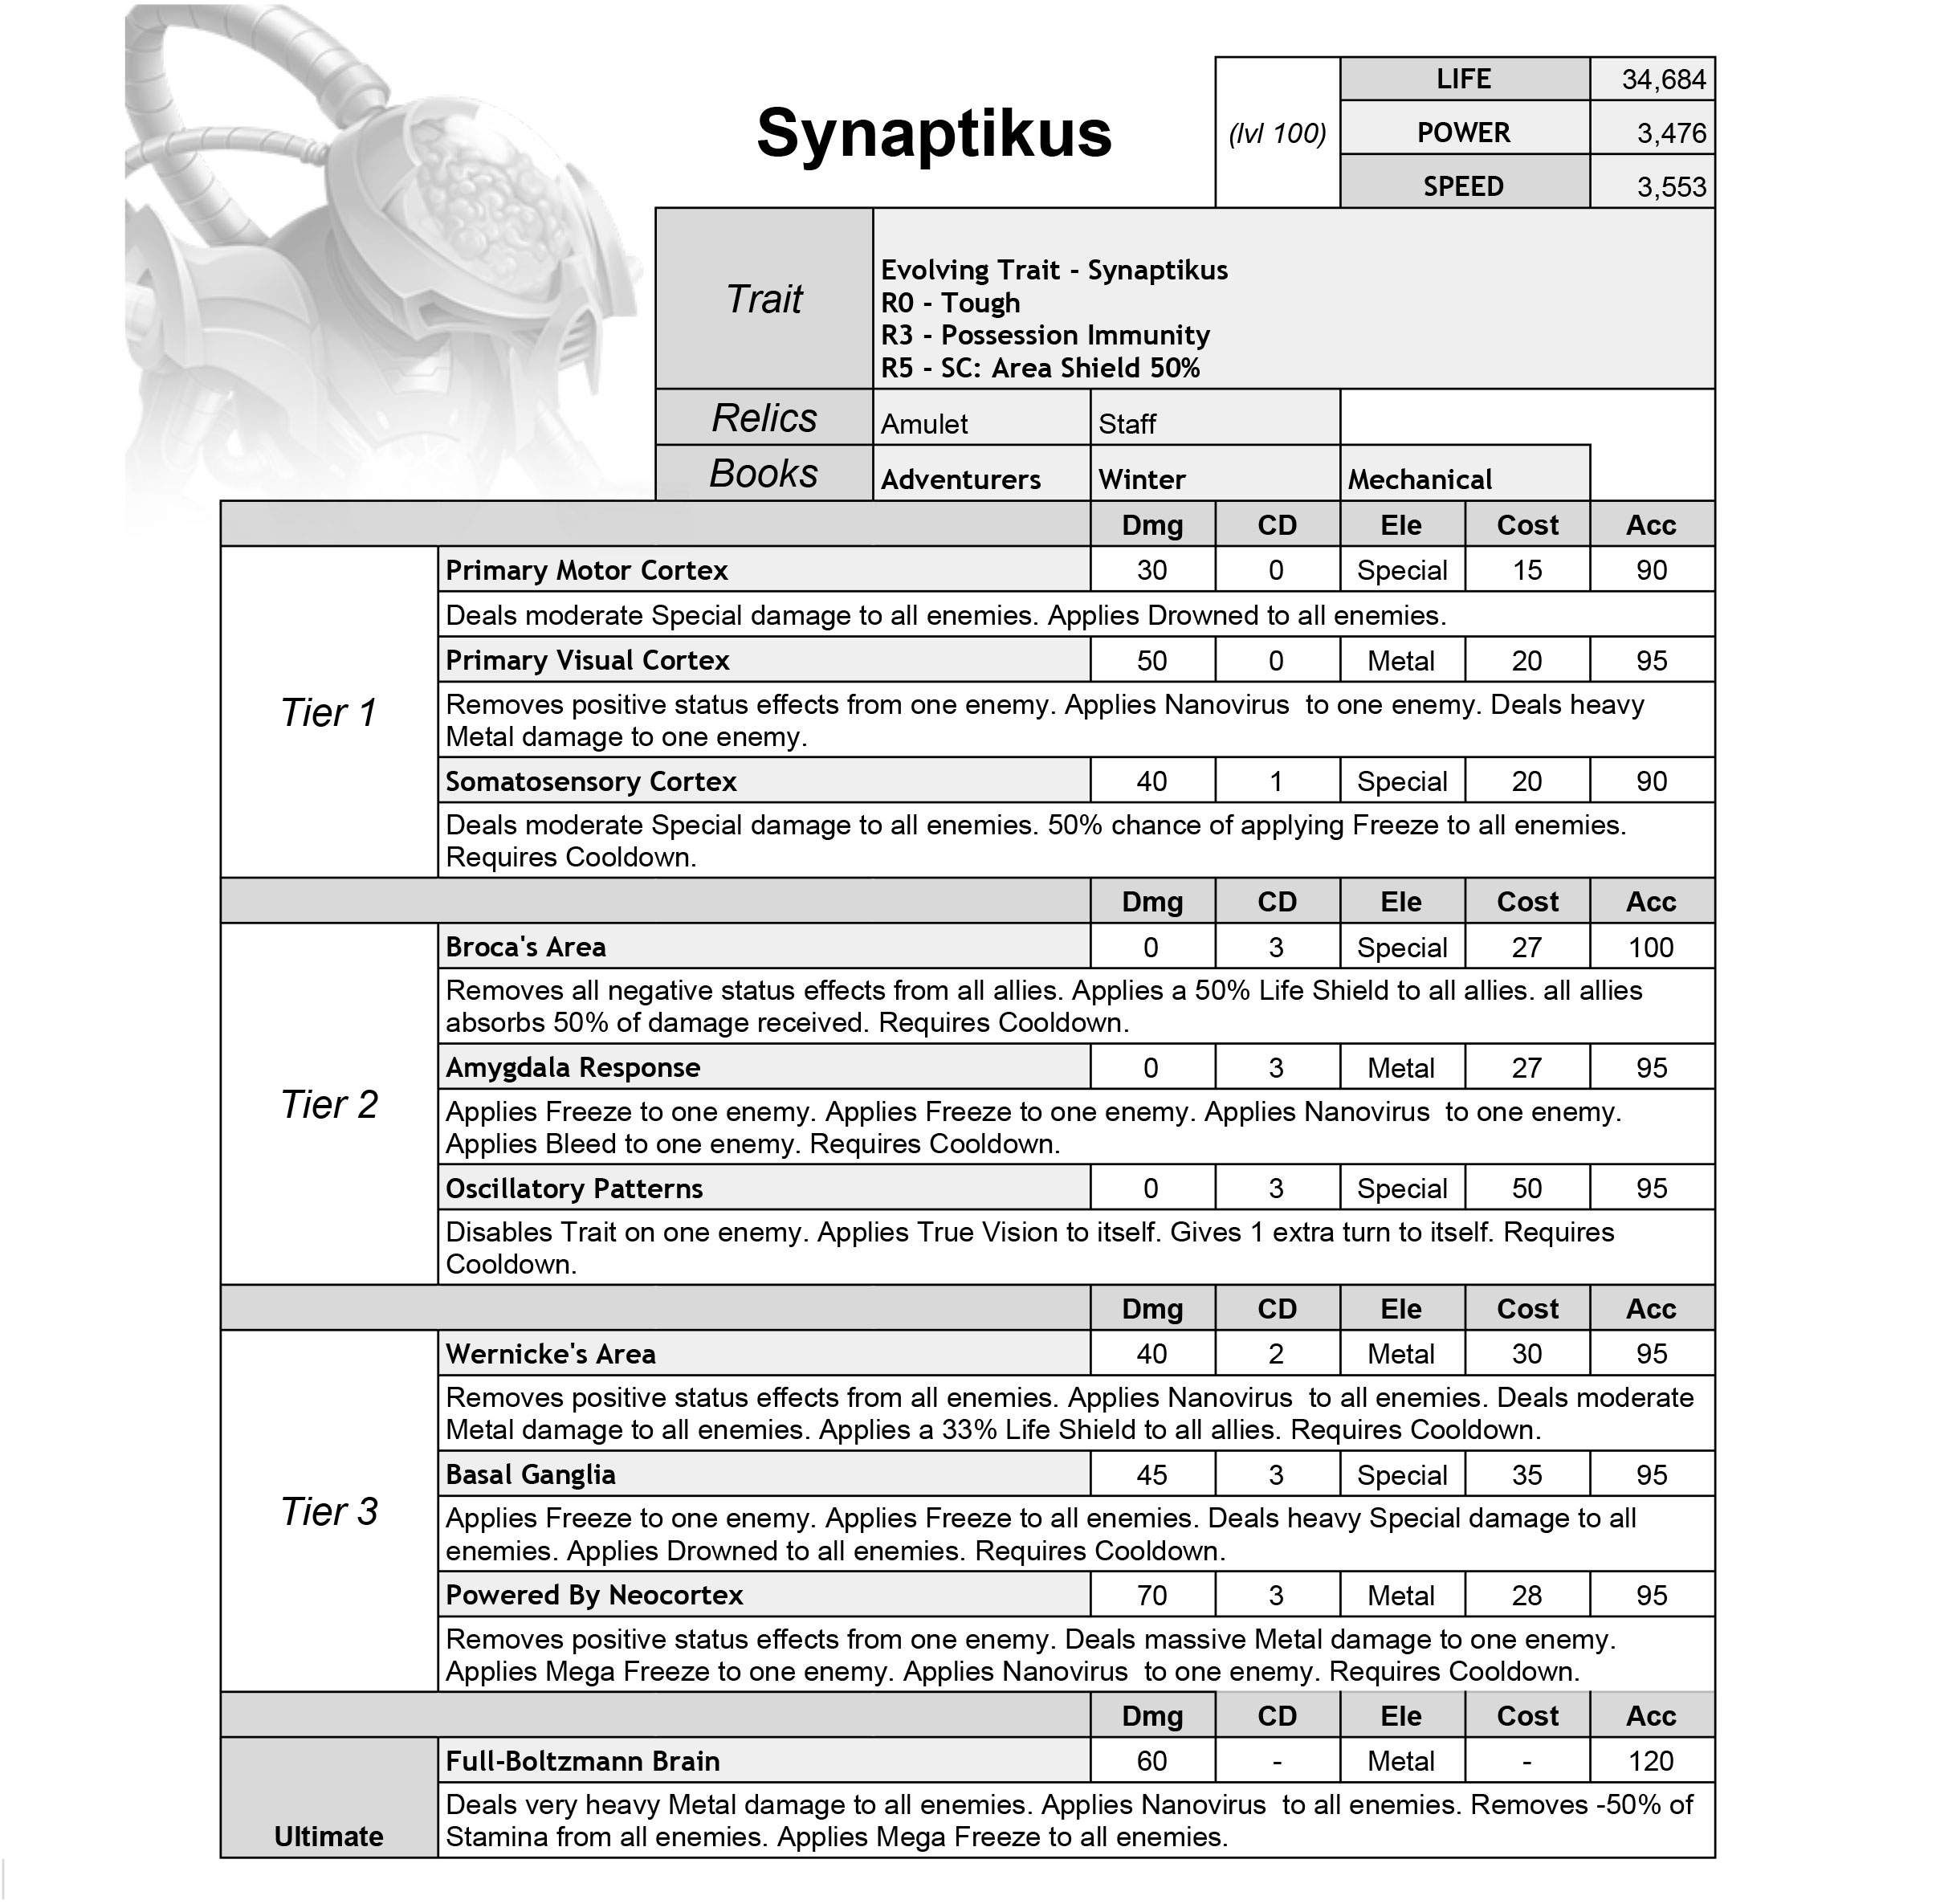 0_1579076984571_Synaptikus--Monster-Shaper-&-Briefing-v3.7.0--ML---SellingPoints-(1).jpg